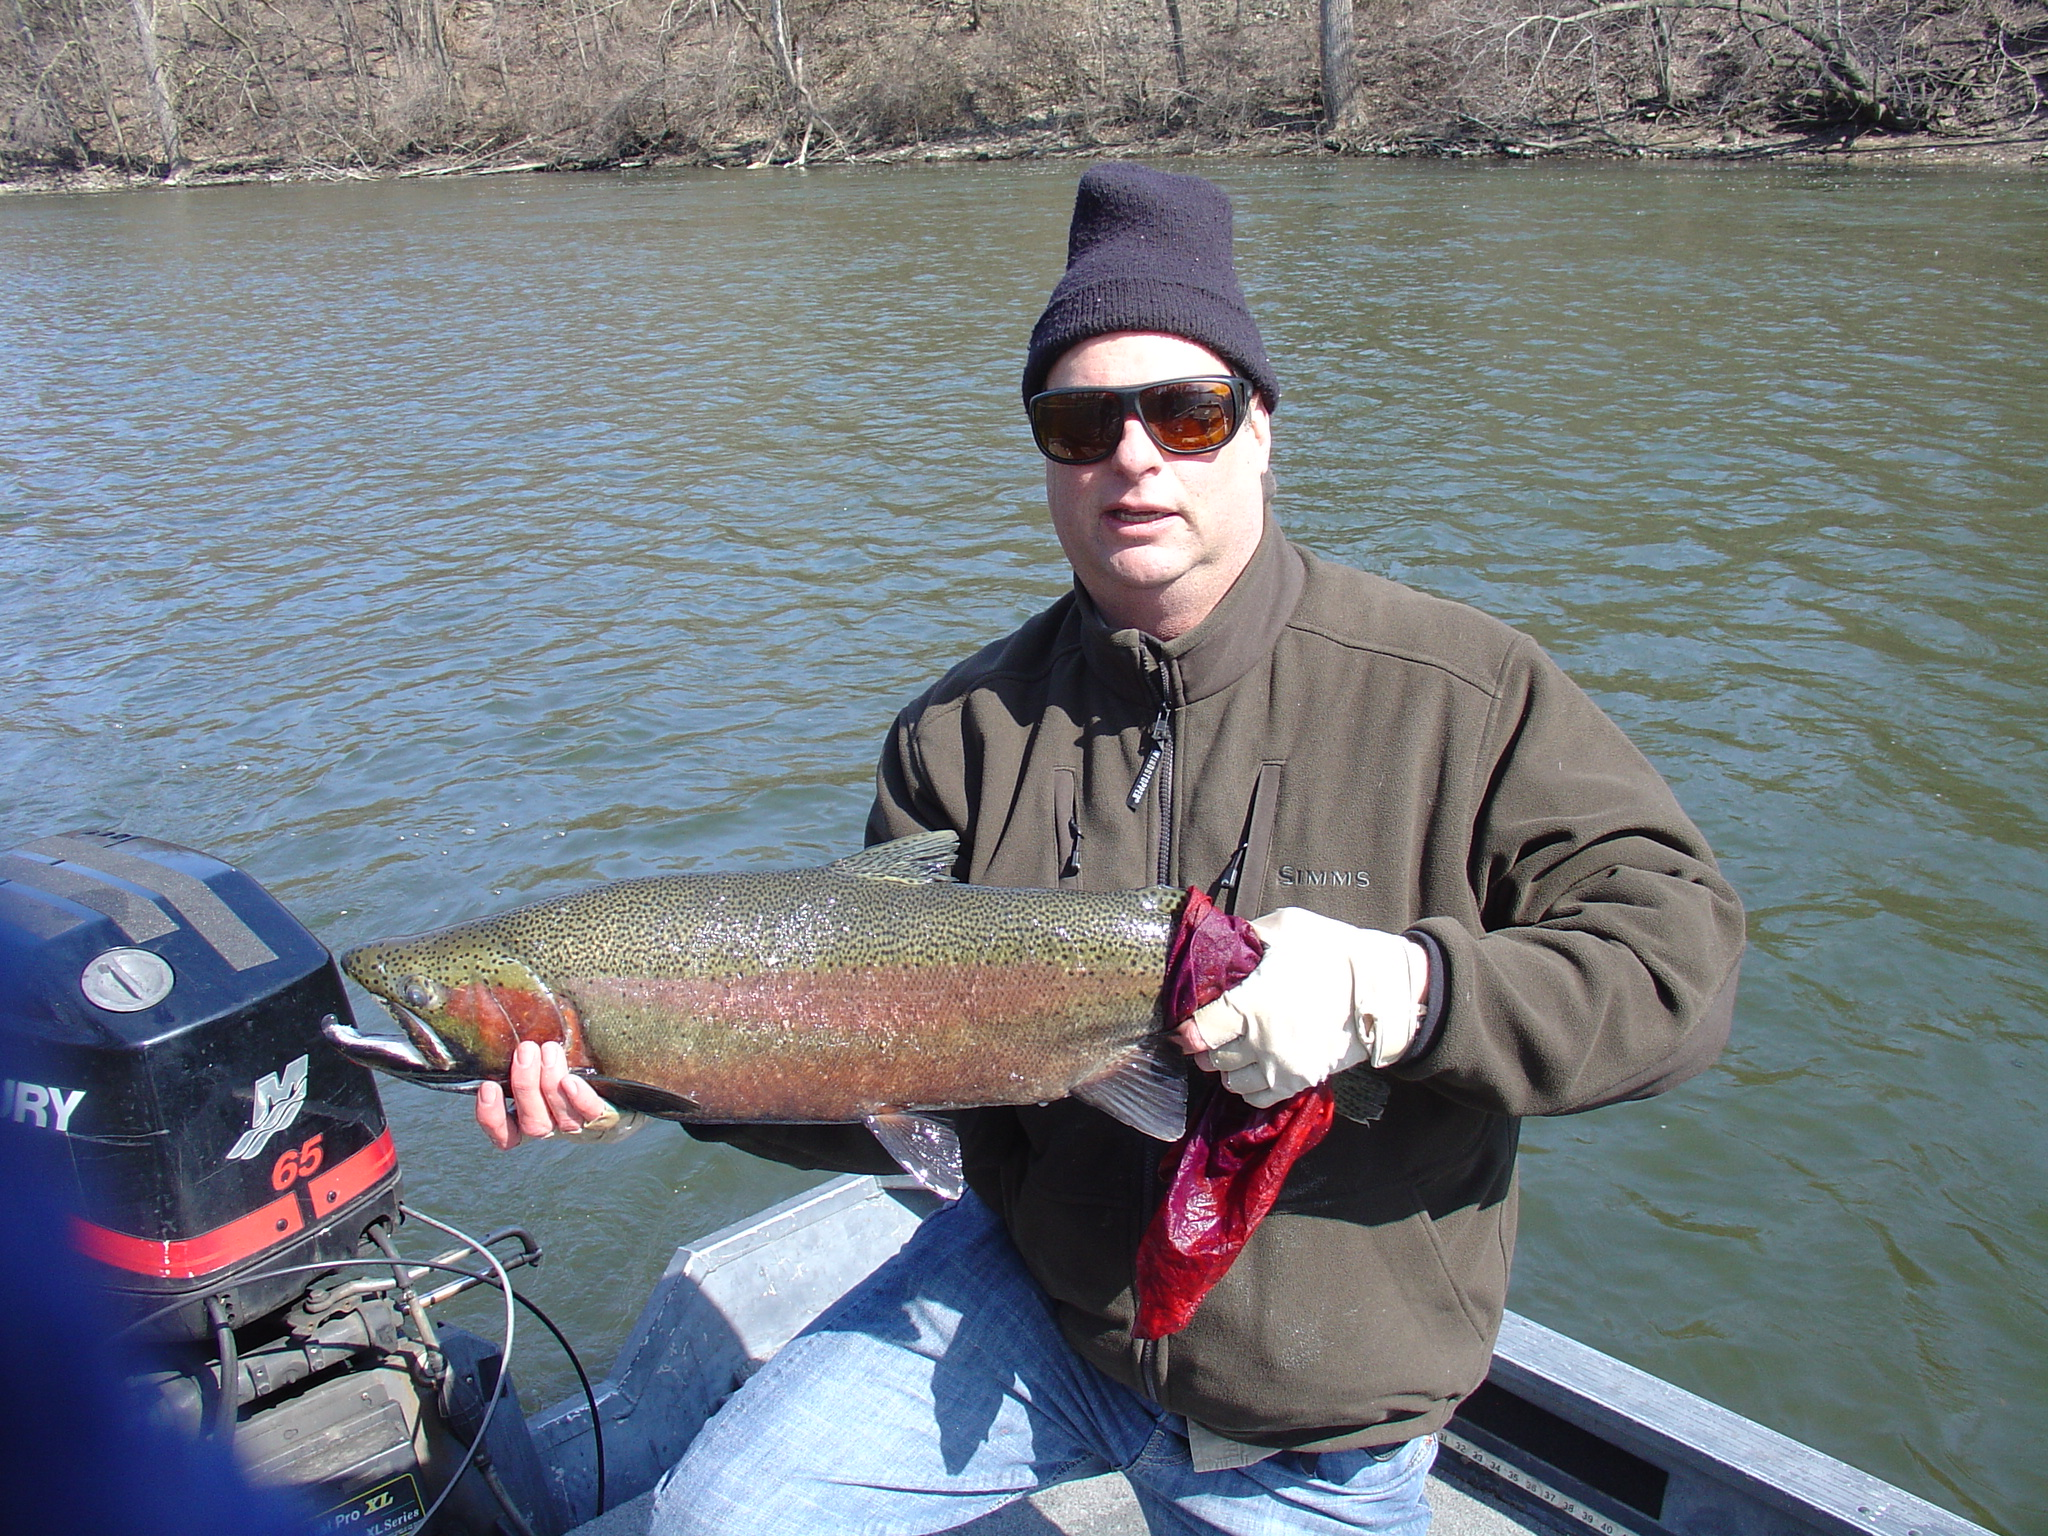 Stuart Feinberg West Chicago Il.  Fishing with Ripple Guide Services on the St Joe river 3/30/13